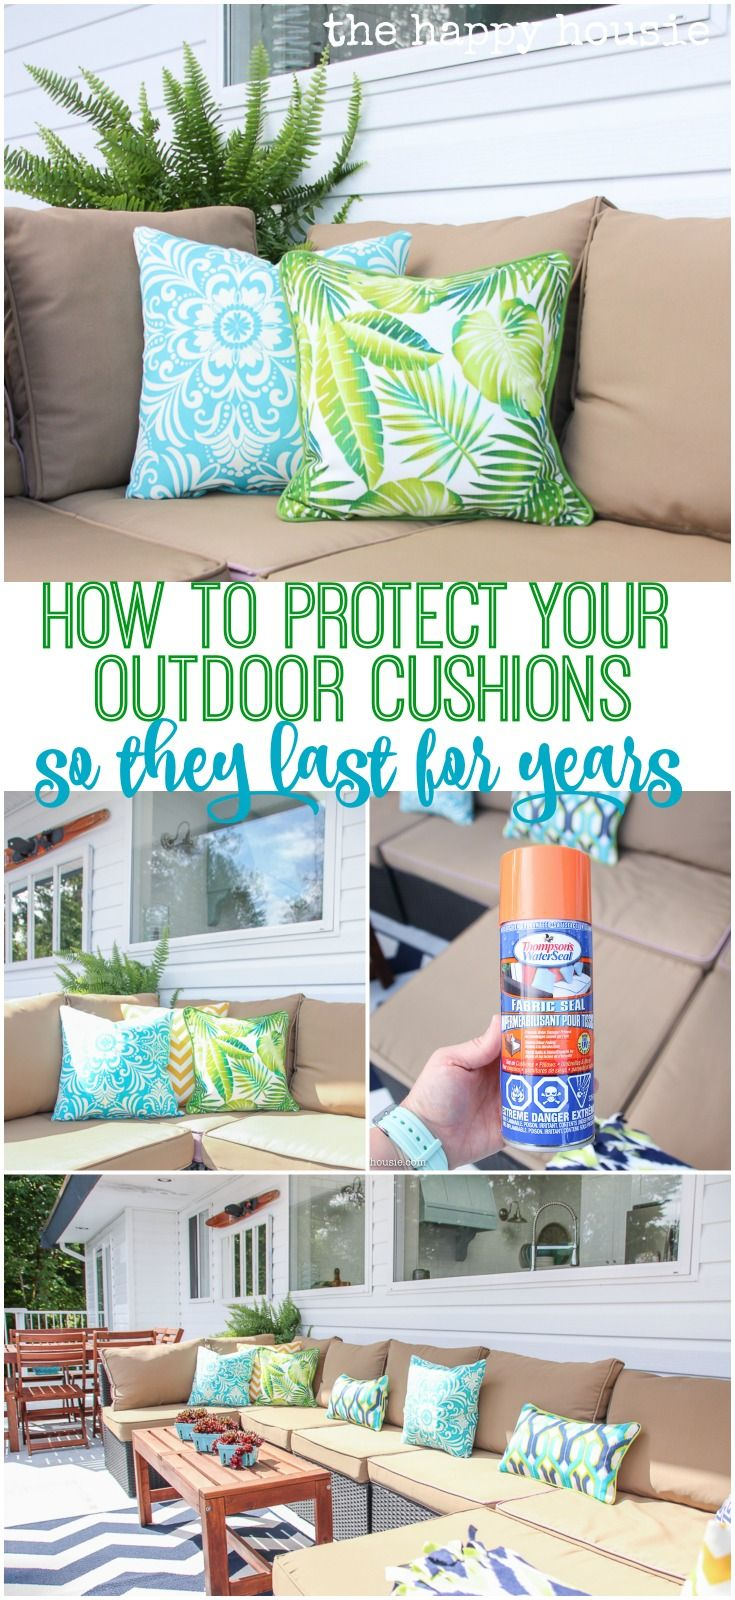 How to Protect Your Outdoor Cushions Outdoor cushions Summer and